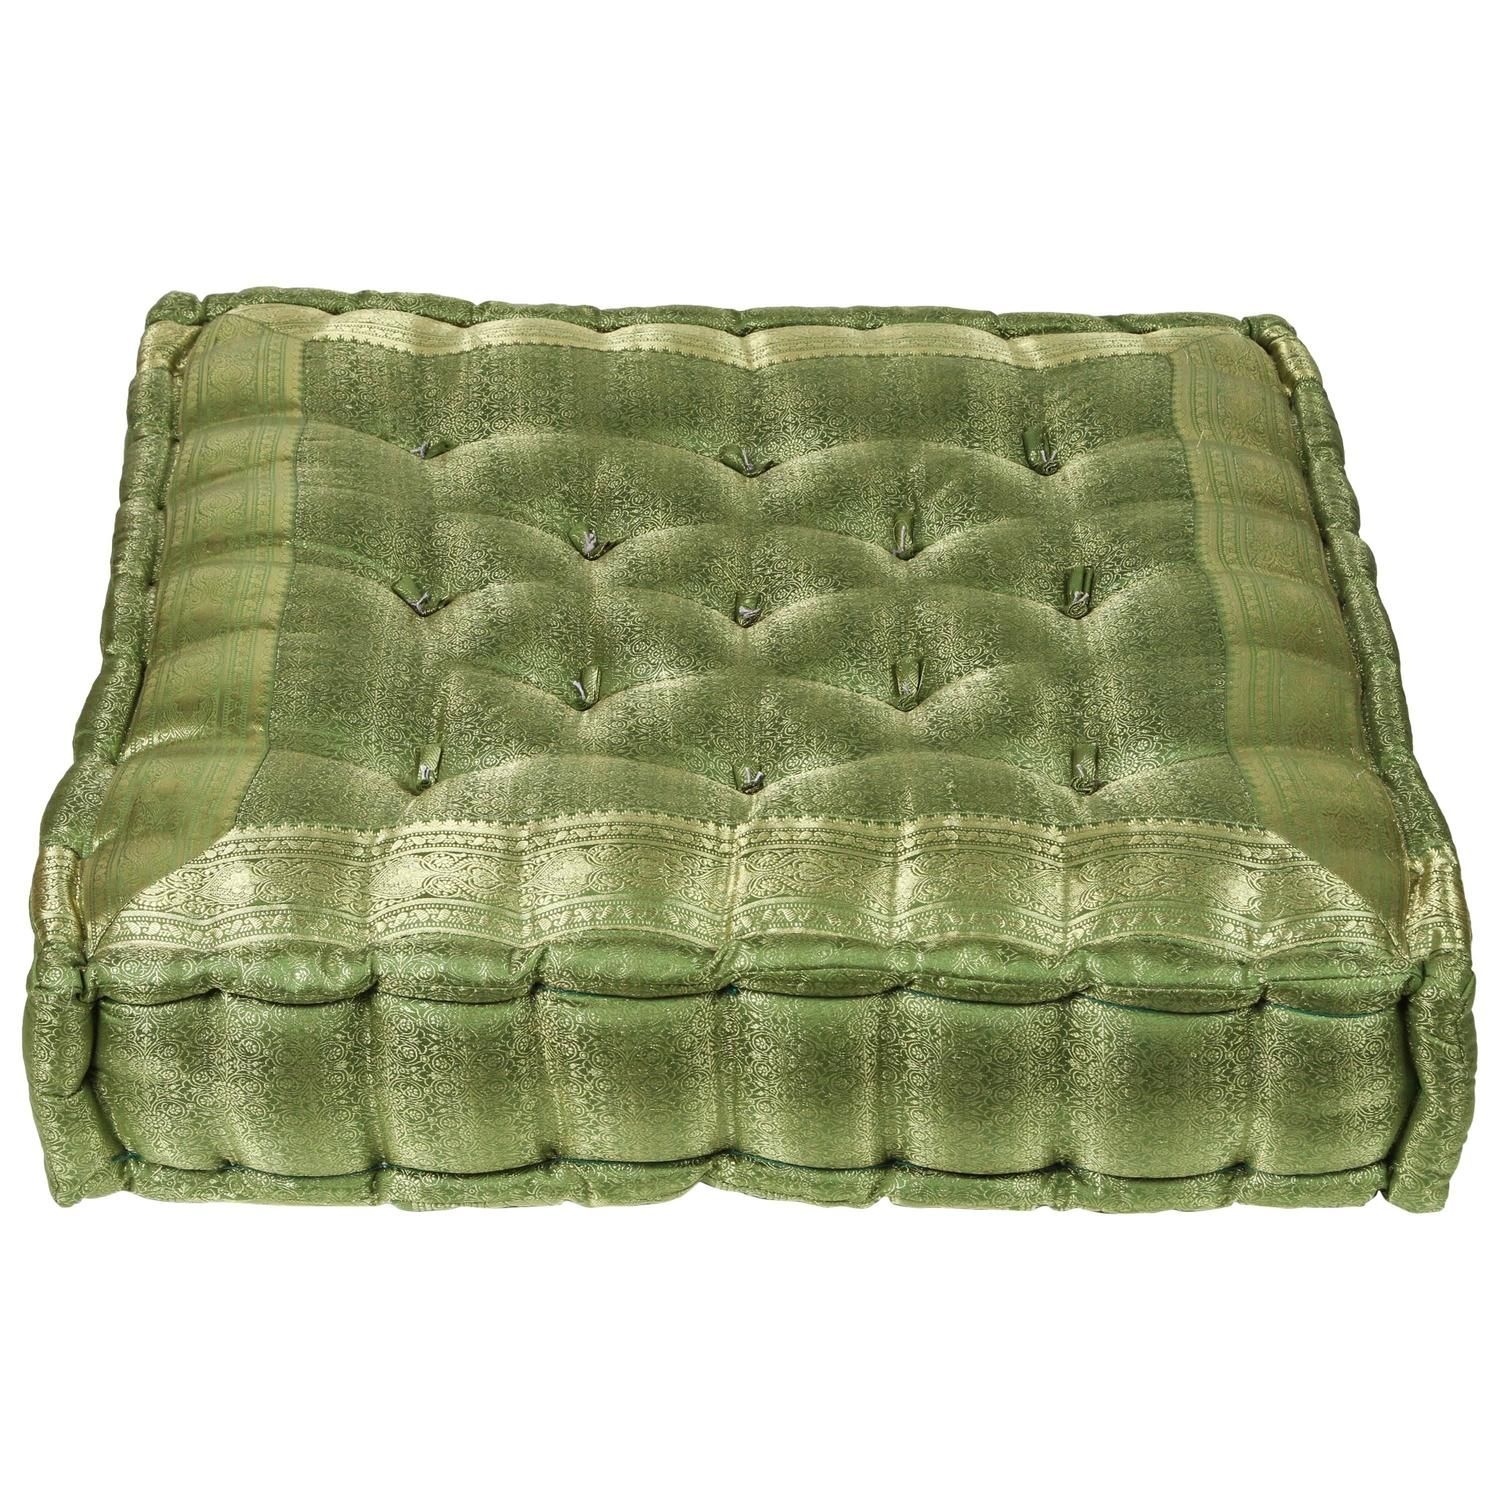 Oversized Silk Square Green Tufted Moroccan Floor Pillow Cushion Moroccan Floor Pillows Floor Pillows Pillow Cushion